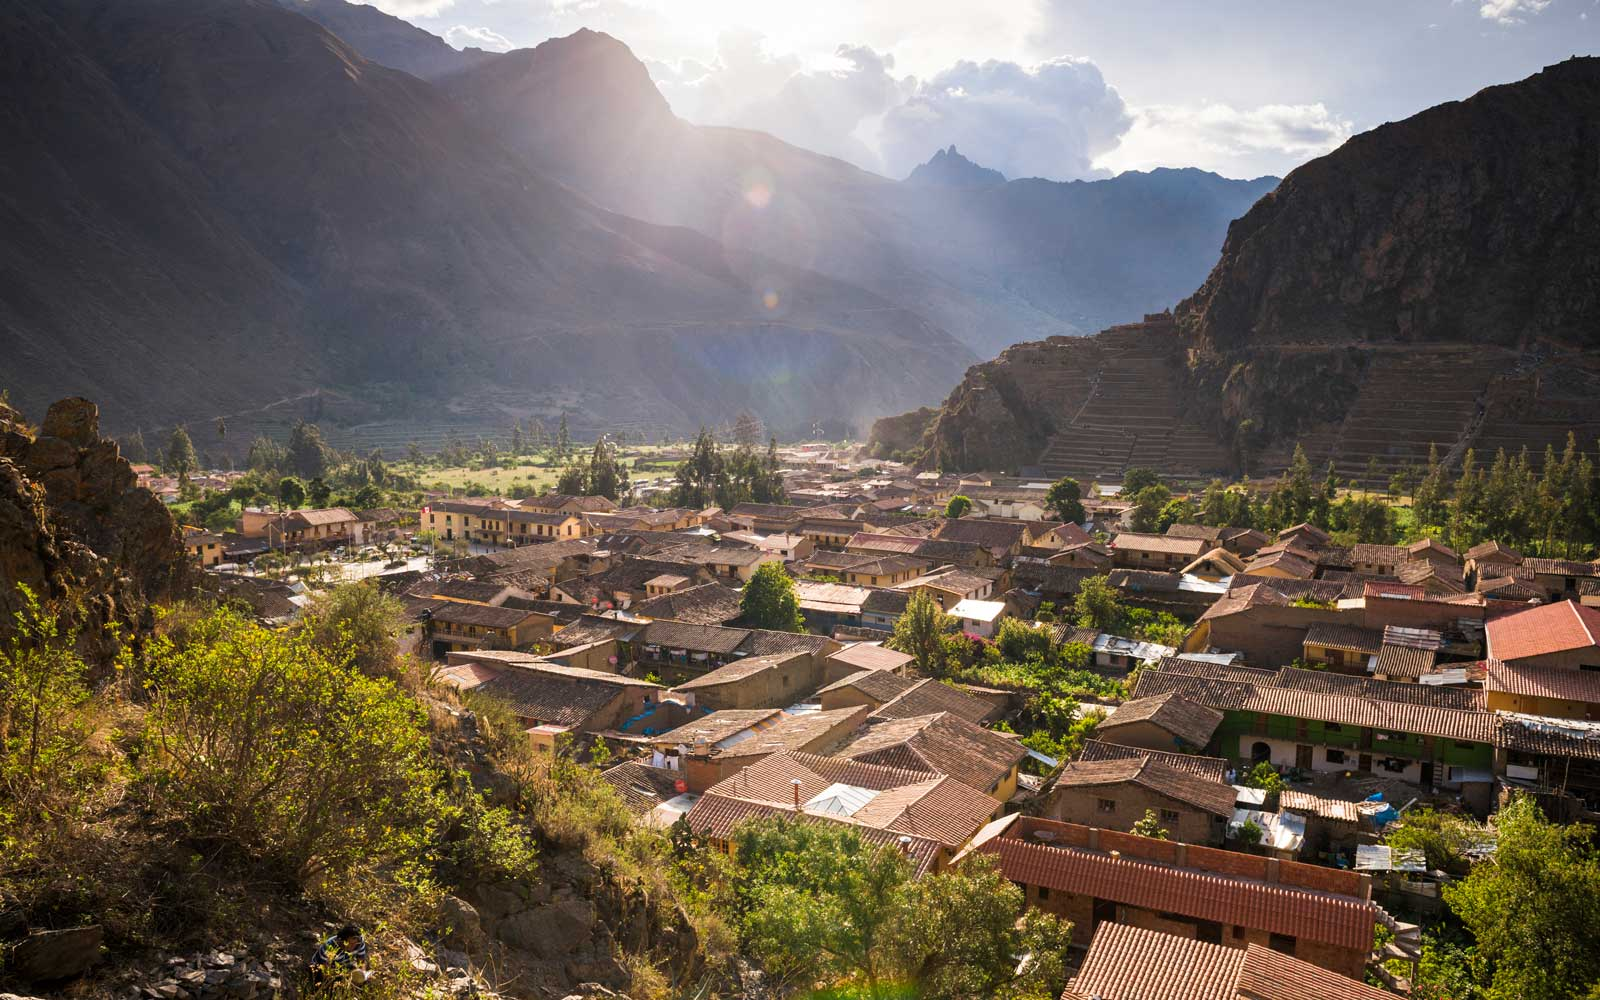 Ollantaytambo Inca Ruins at sunset seen behind Ollantaytambo Town, Peru